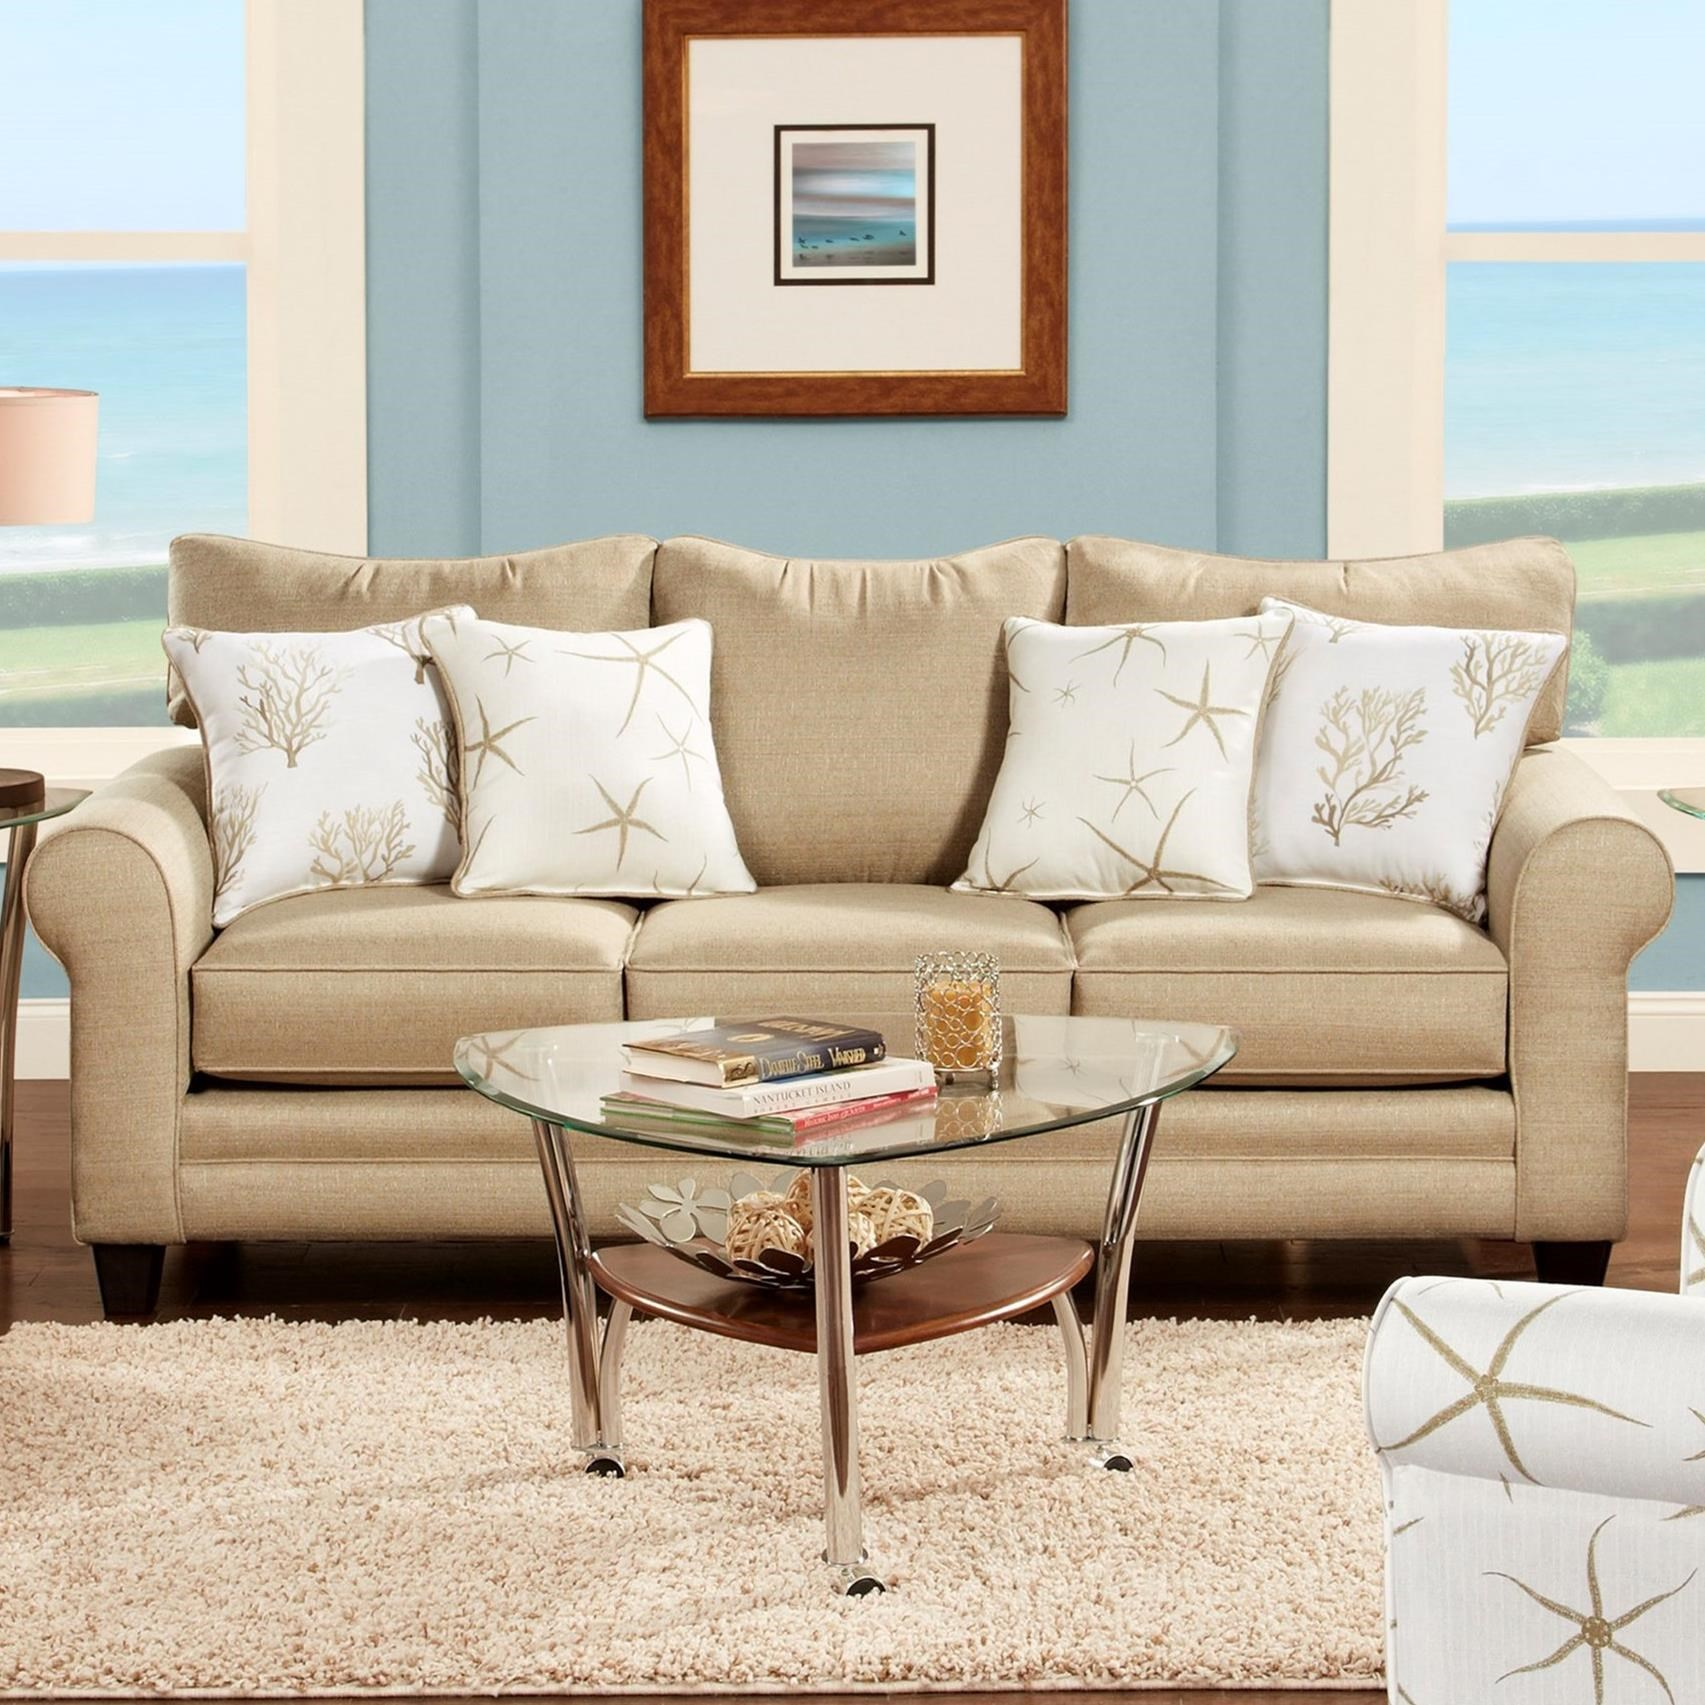 VFM Signature 1140 Sleeper Sofa - Item Number: 1144Vibrant Linen